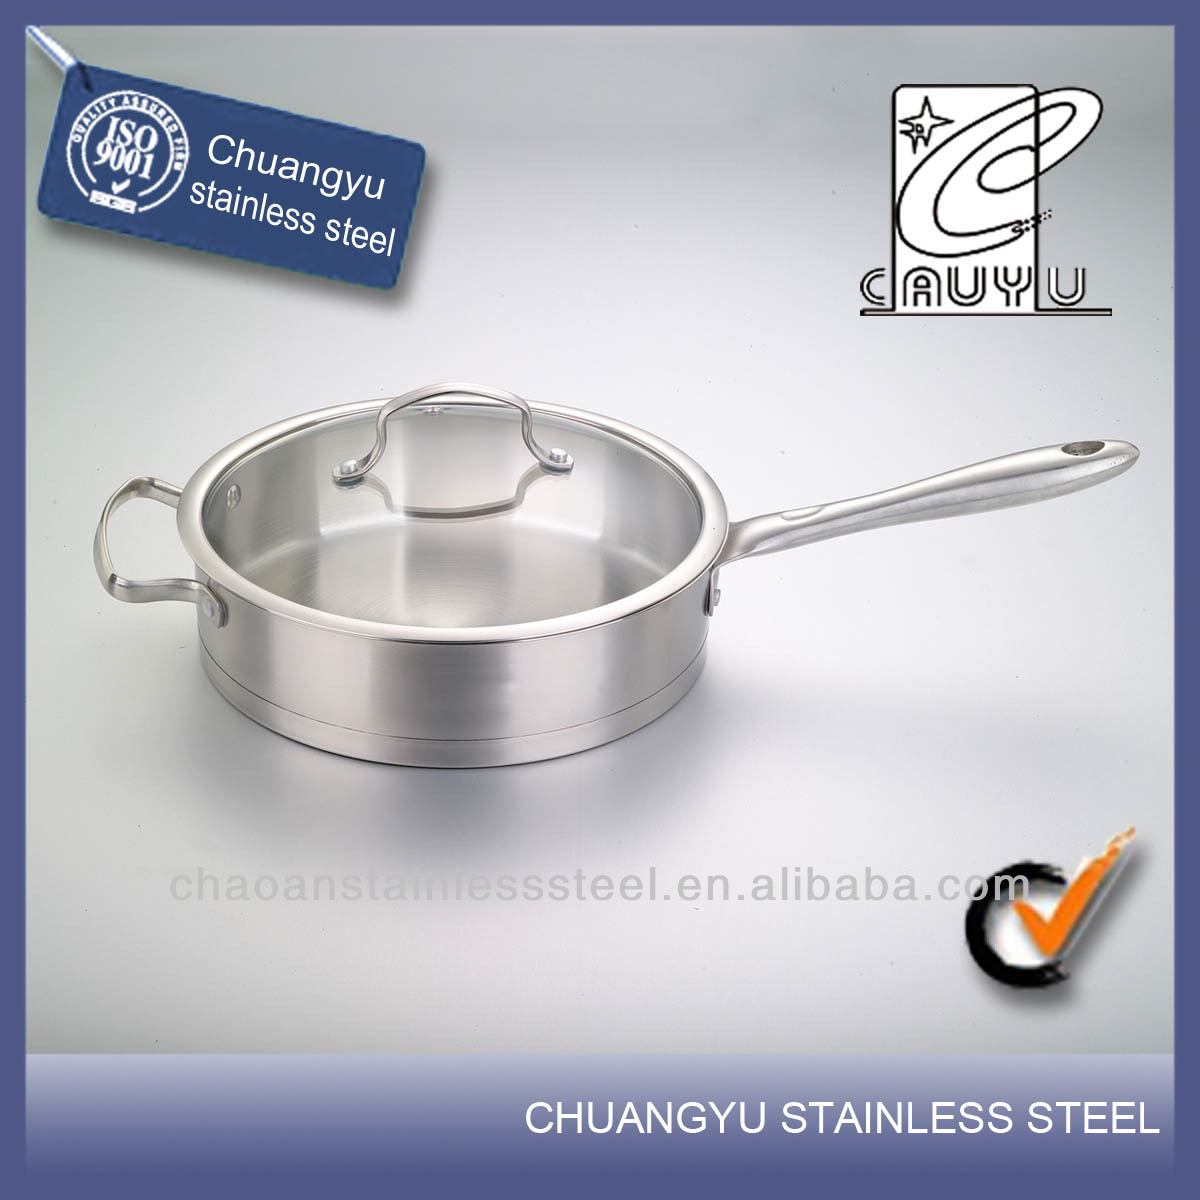 New product stainless steel air frying pan